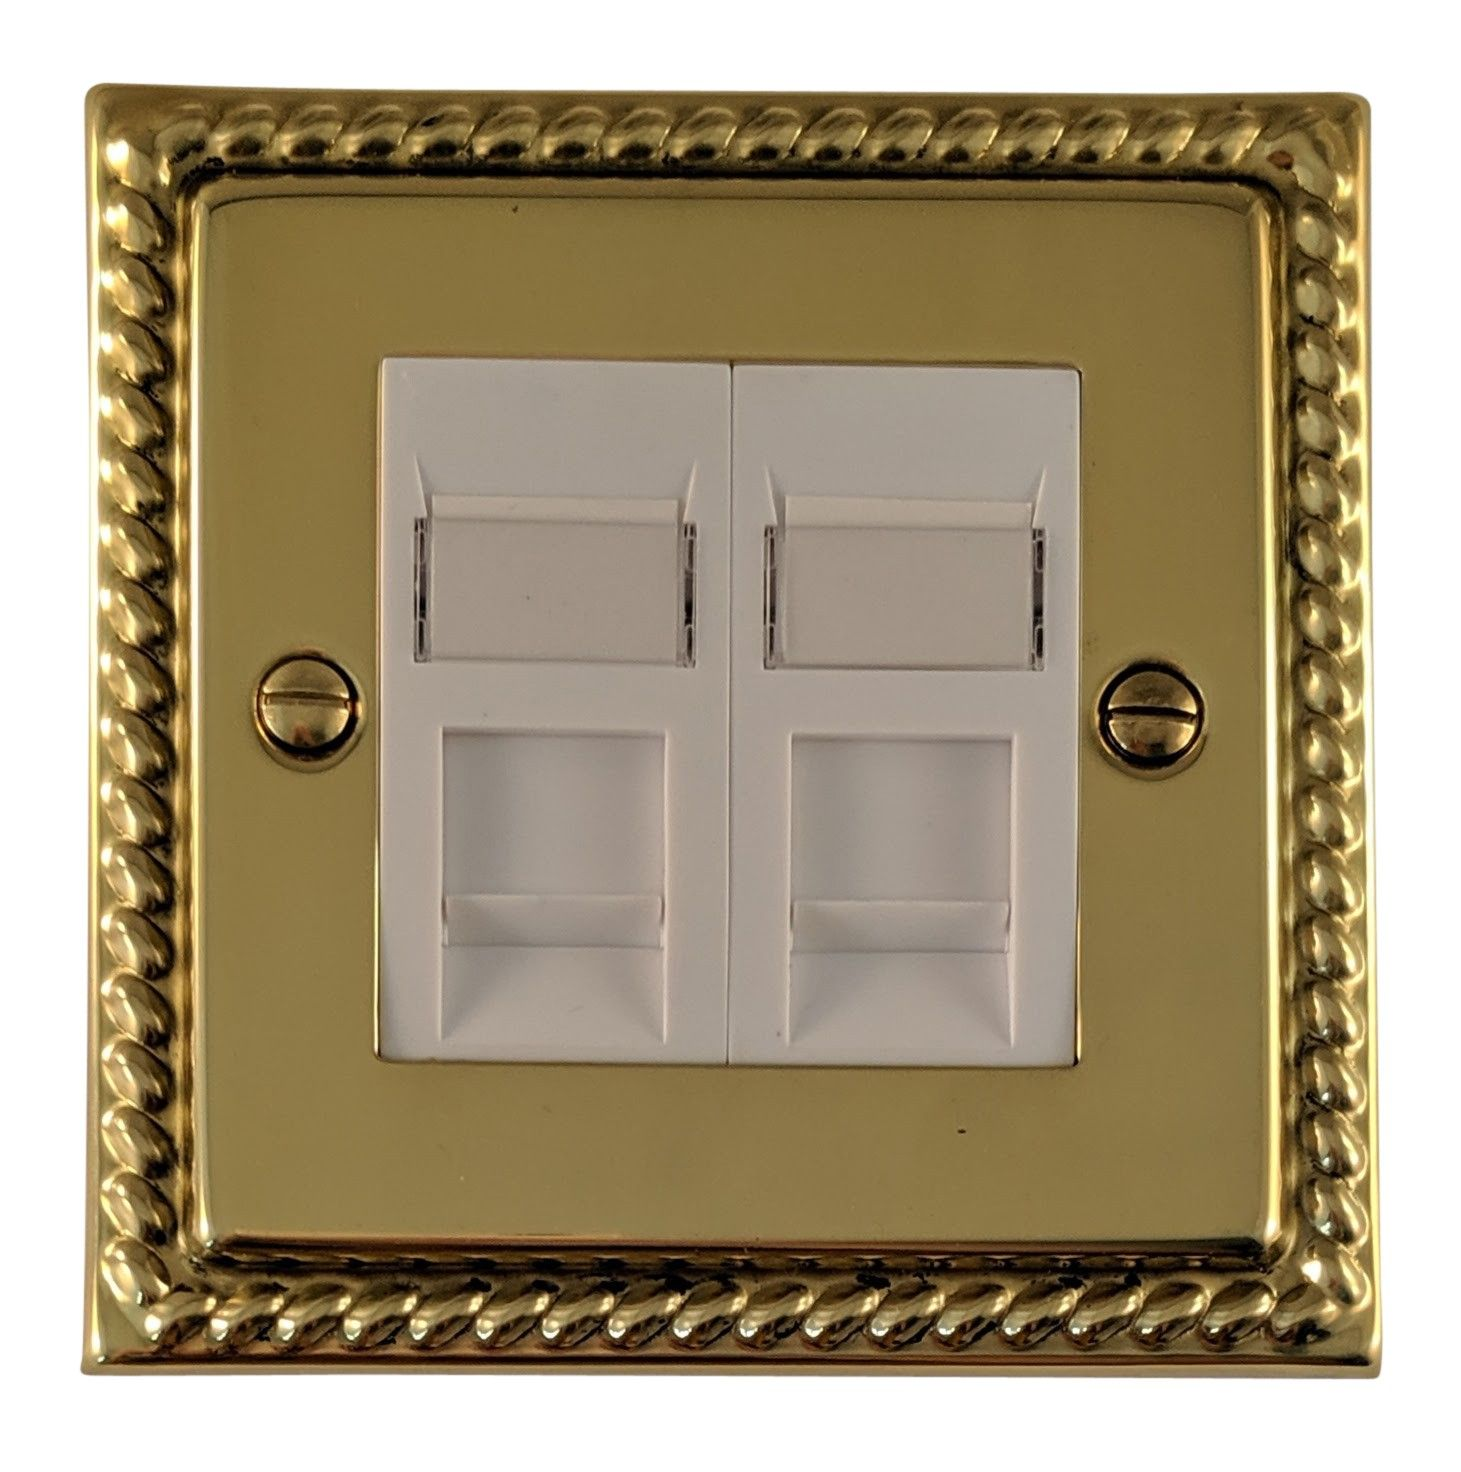 G&H MB63W Monarch Roped Polished Brass 2 Gang Master BT Telephone Socket